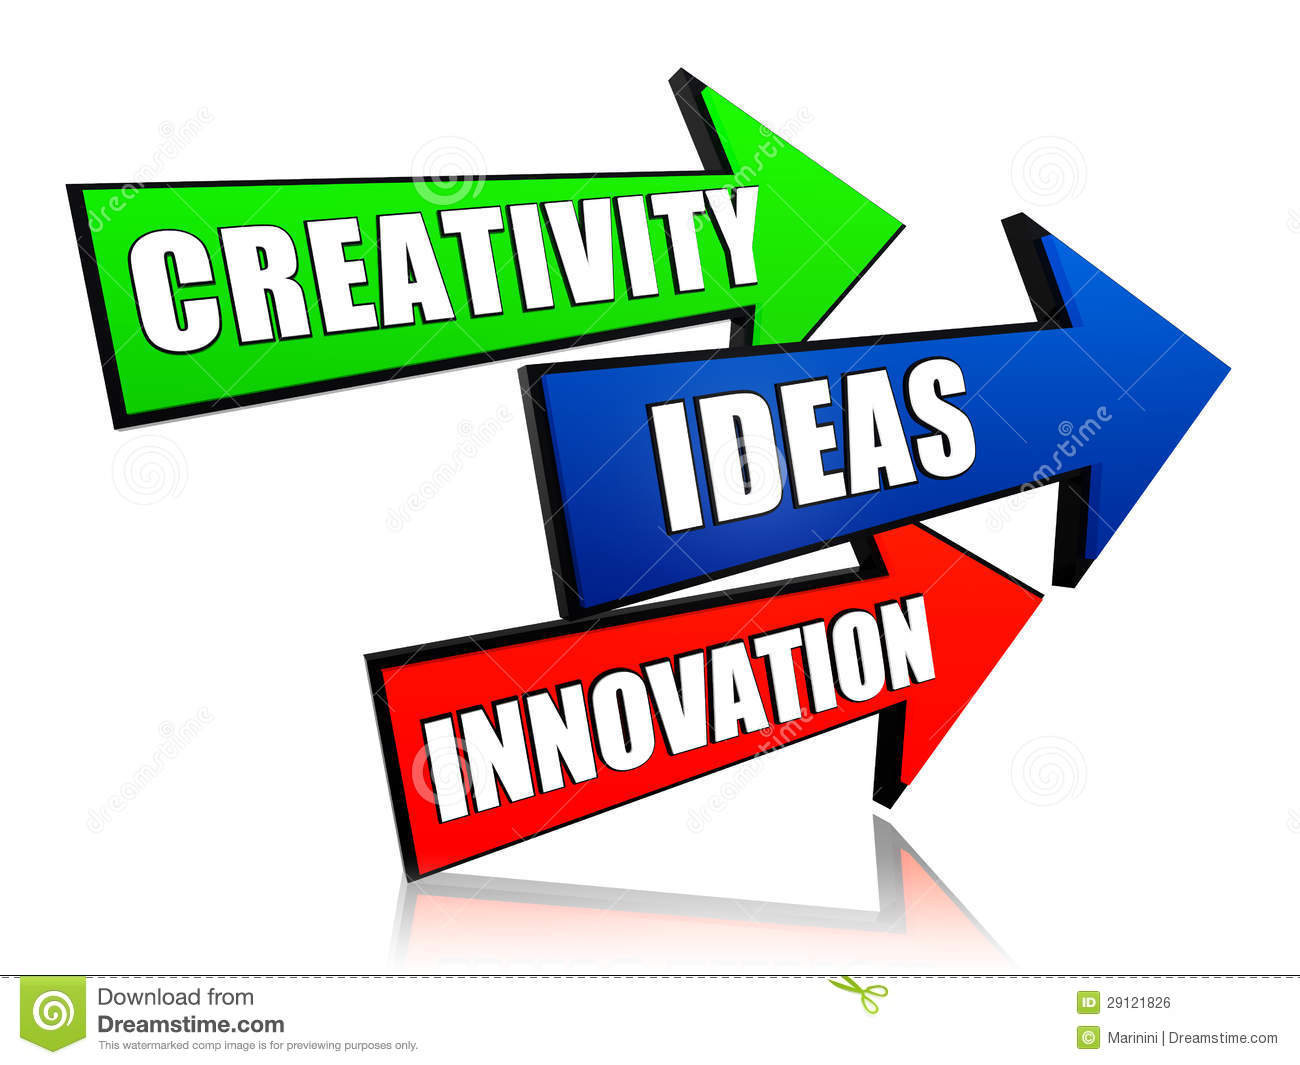 Cr ativit id e innovation dans les fl ches image libre for Idee innovation produit